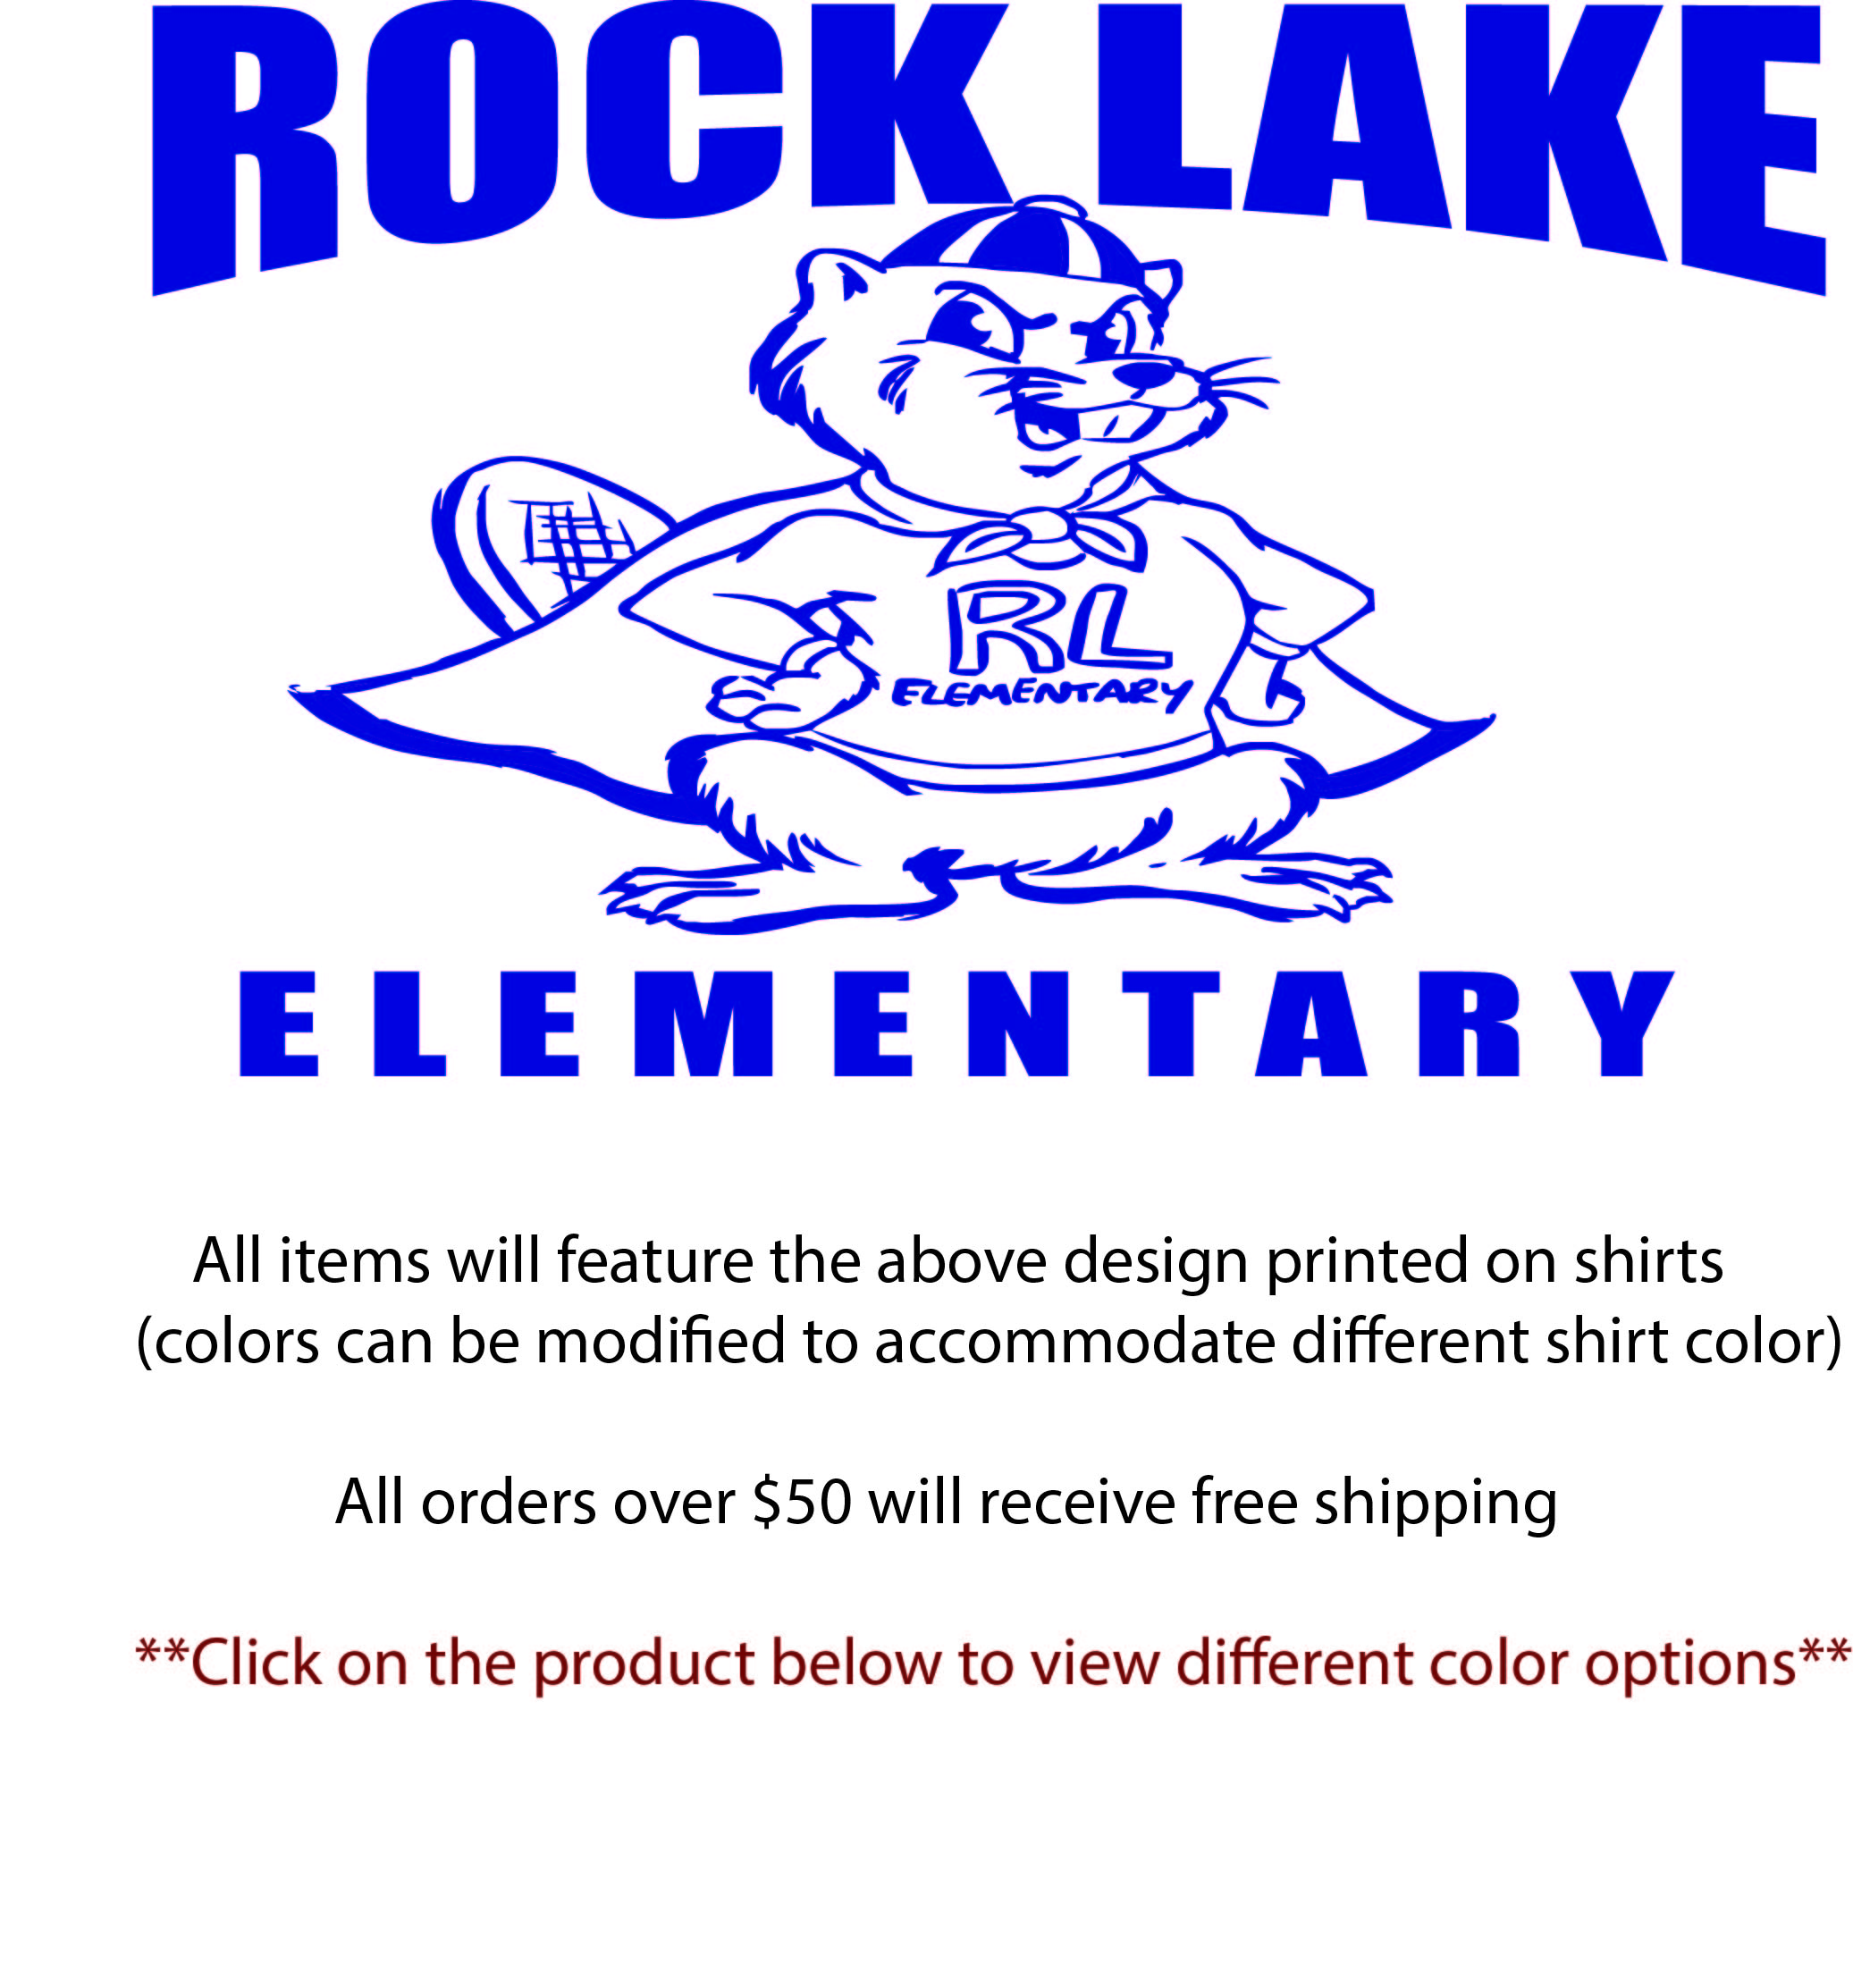 rock-lake-web-site-header-uniforms.jpg